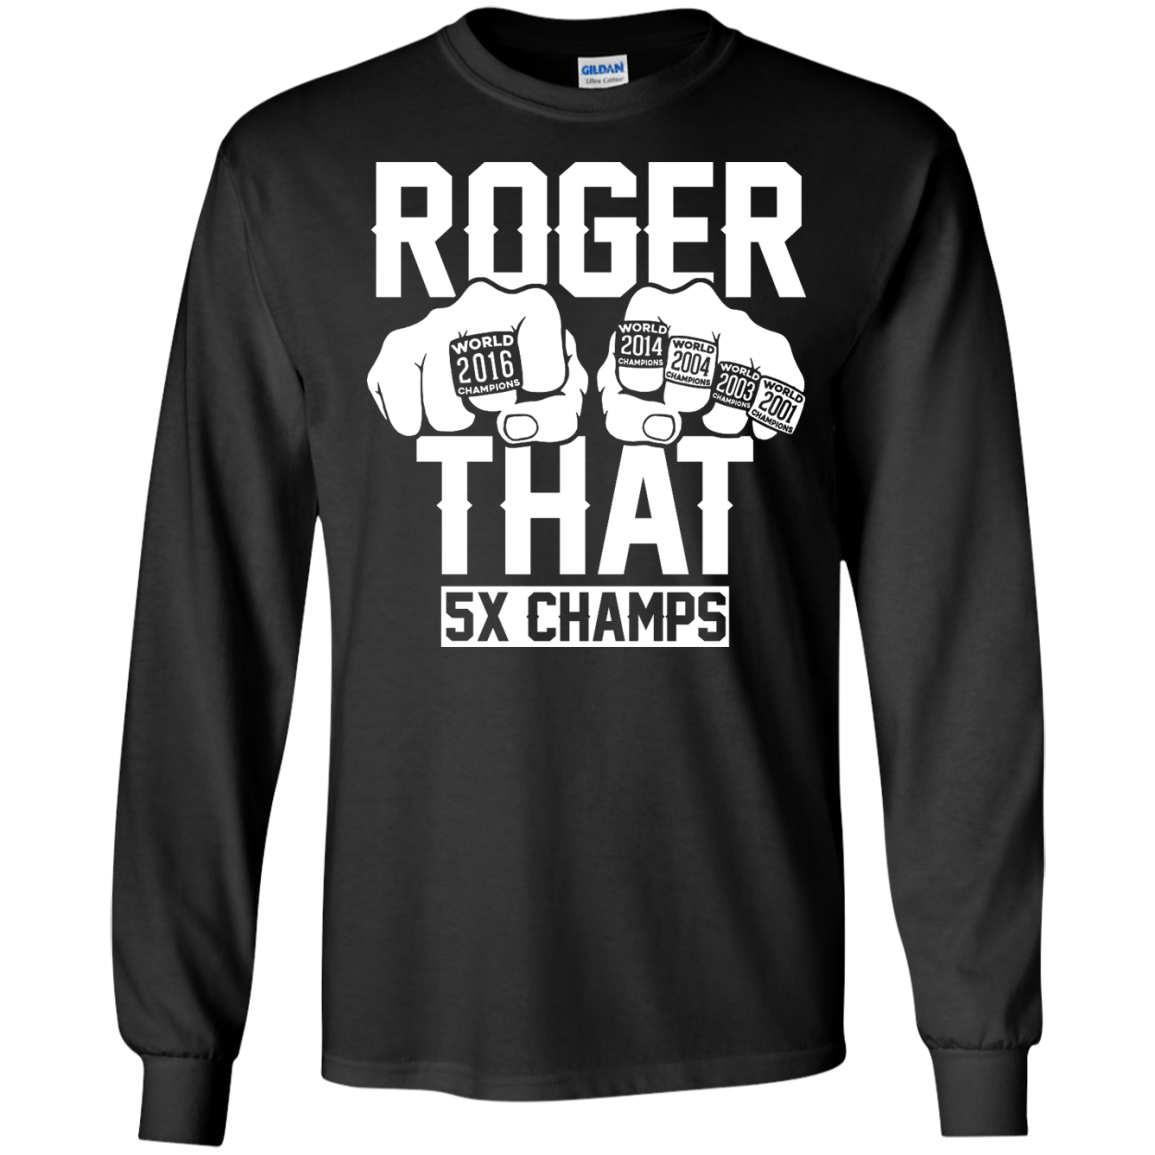 image 841px Roger That 5x Champs – Brady Trolls Goodell T Shirts